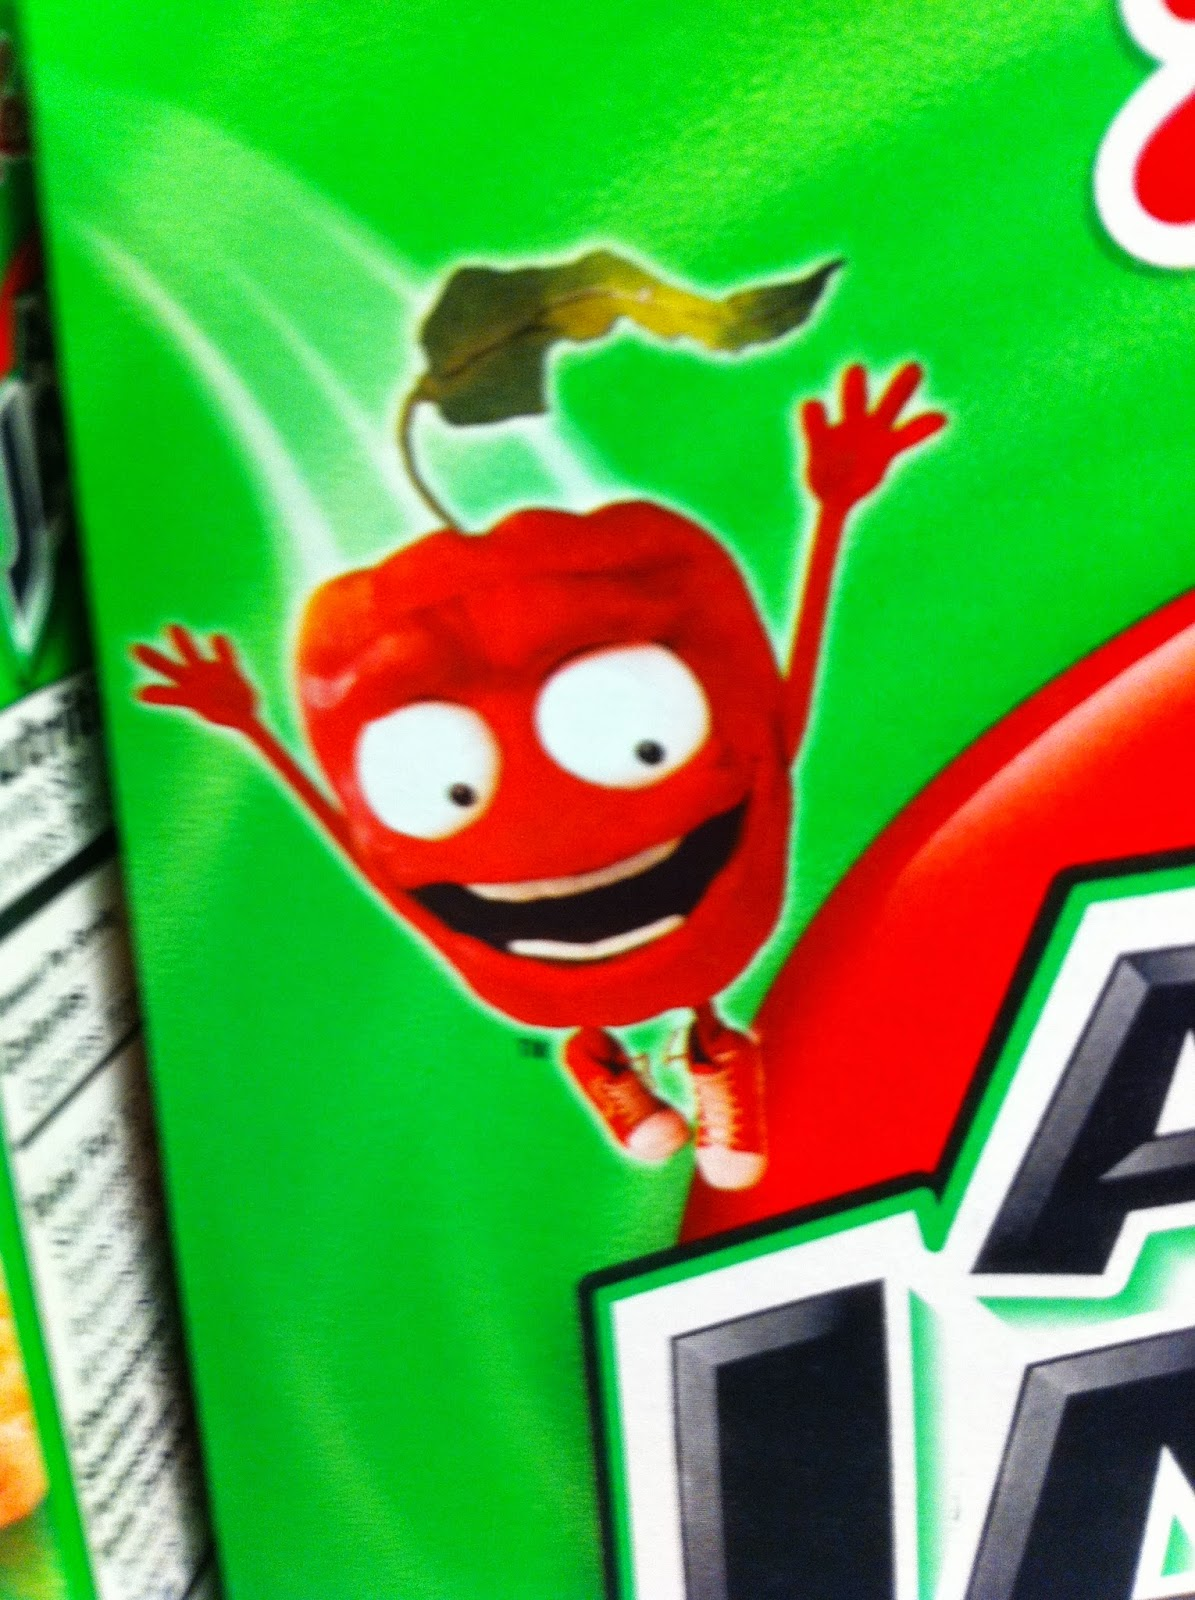 Apple Jacks Apple Character